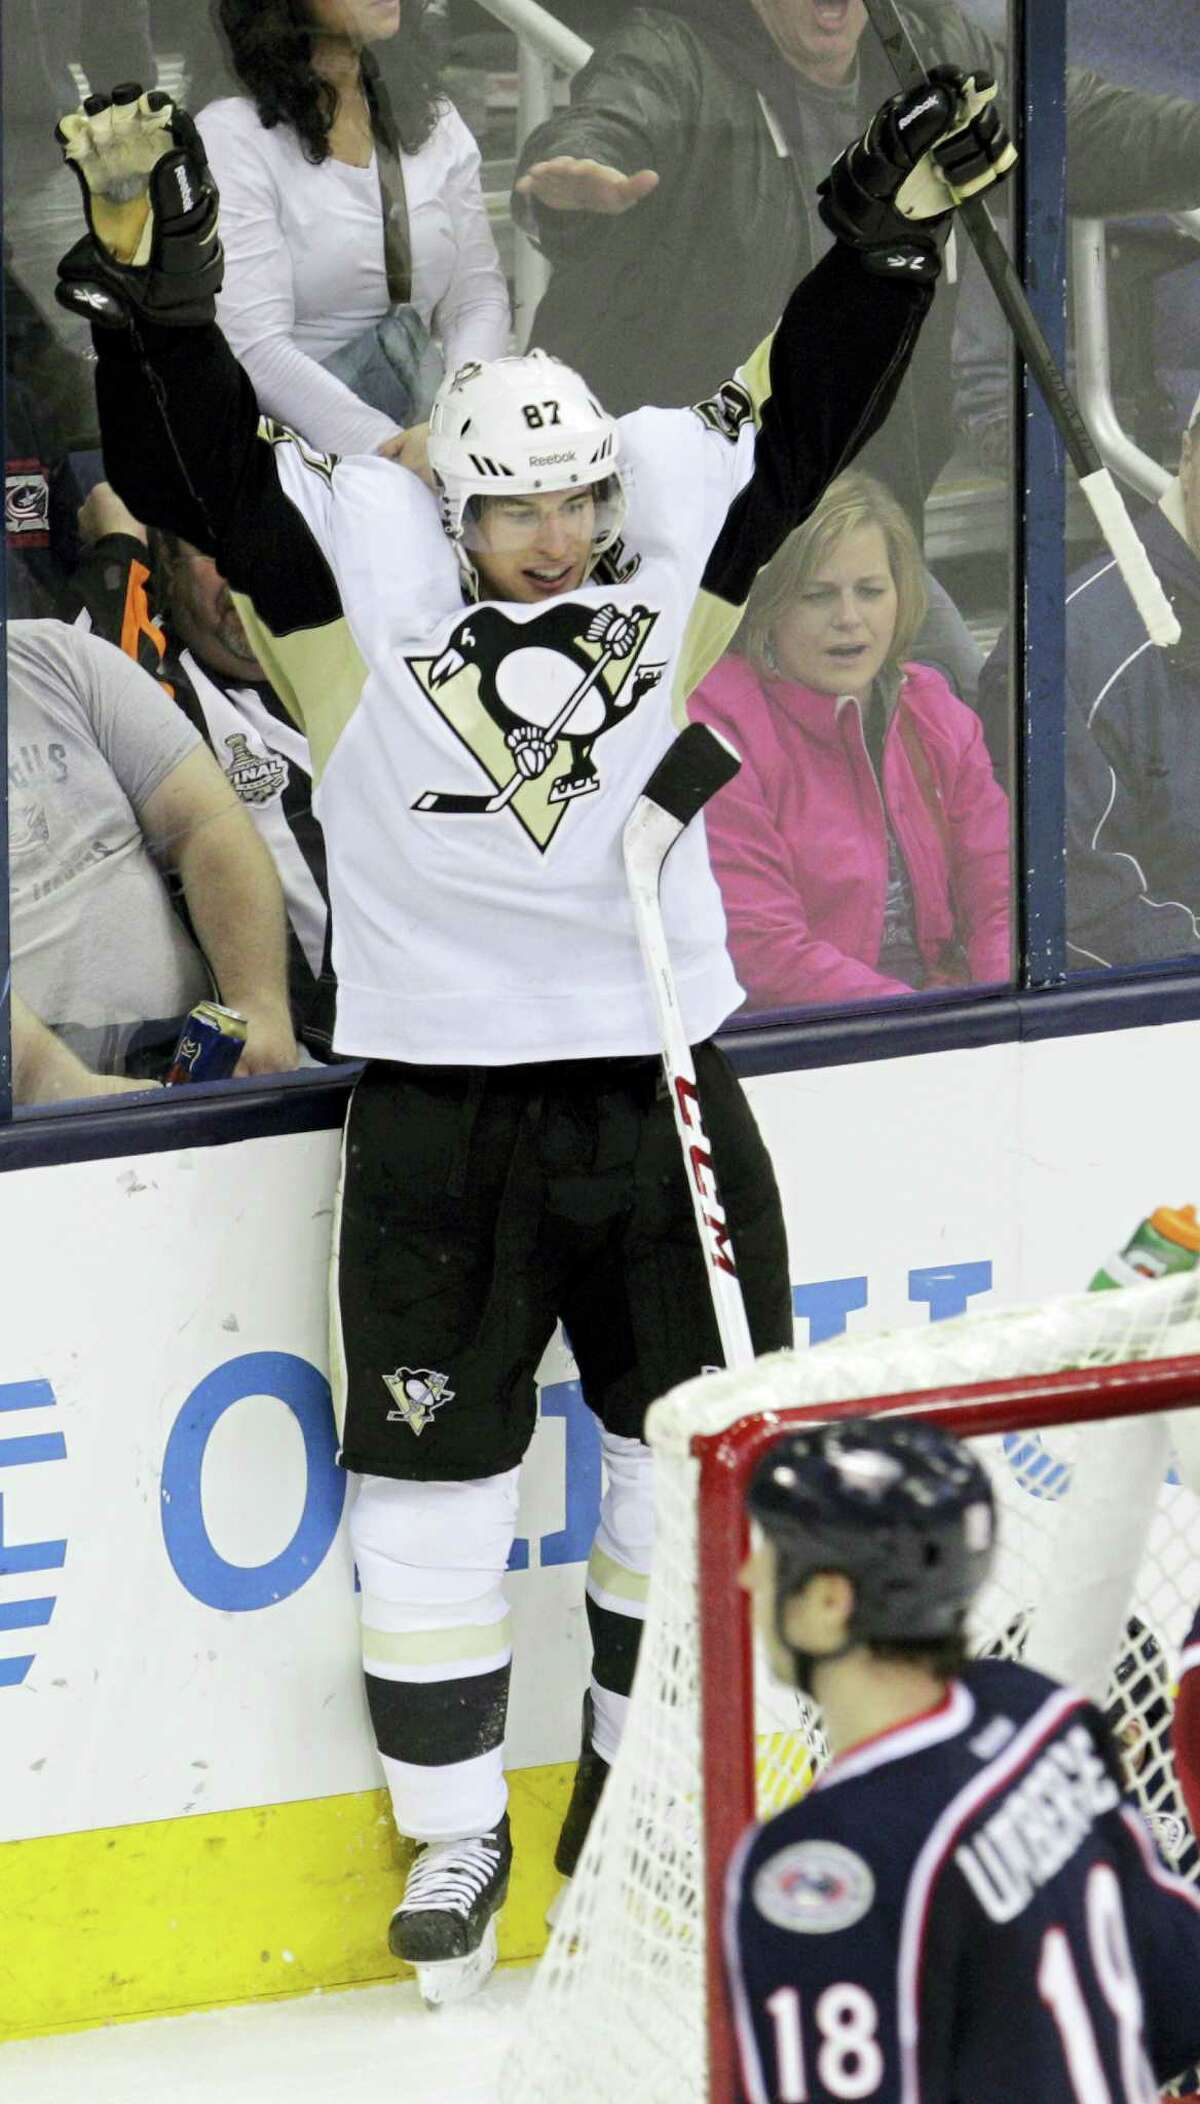 Pittsburgh Penguins' Sidney Crosby celebrates his goal against the Columbus Blue Jackets during the third period of an NHL hockey game on Dec. 29, 2013, in Columbus, Ohio. The Penguins won 5-3.